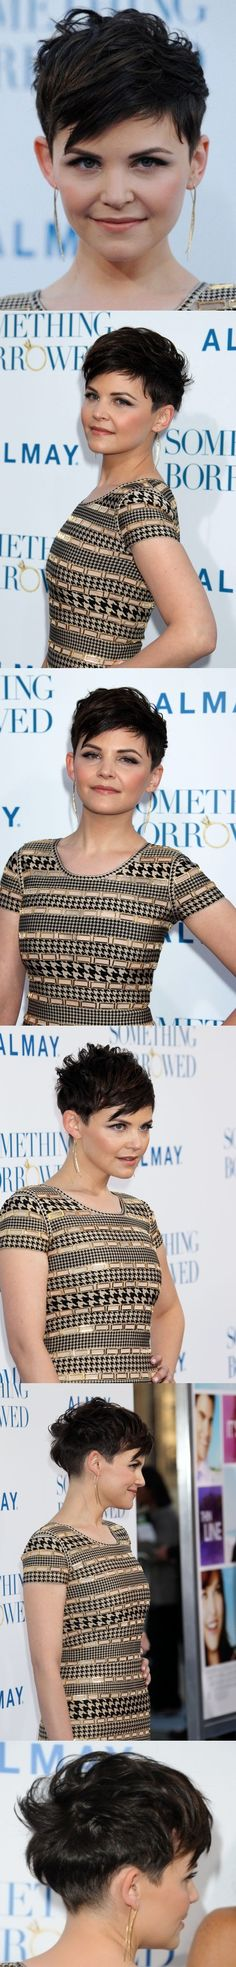 All views of Ginnifer Goodwin haircut (#hair)